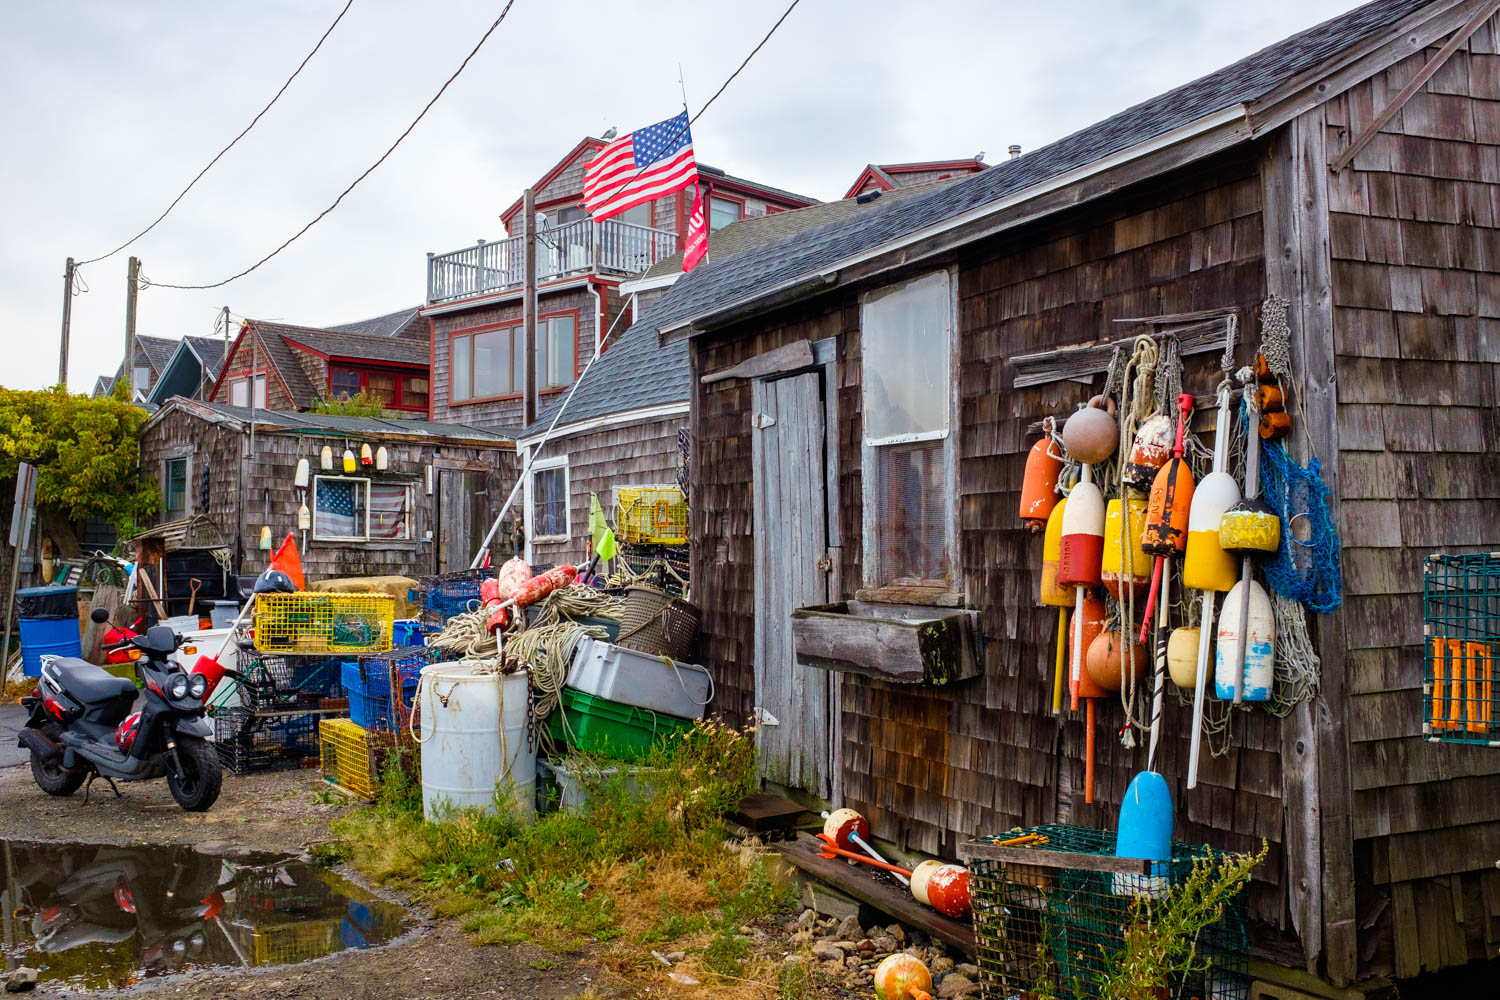 Back view of Bearskin Neck in Rockport, Massachussetts.